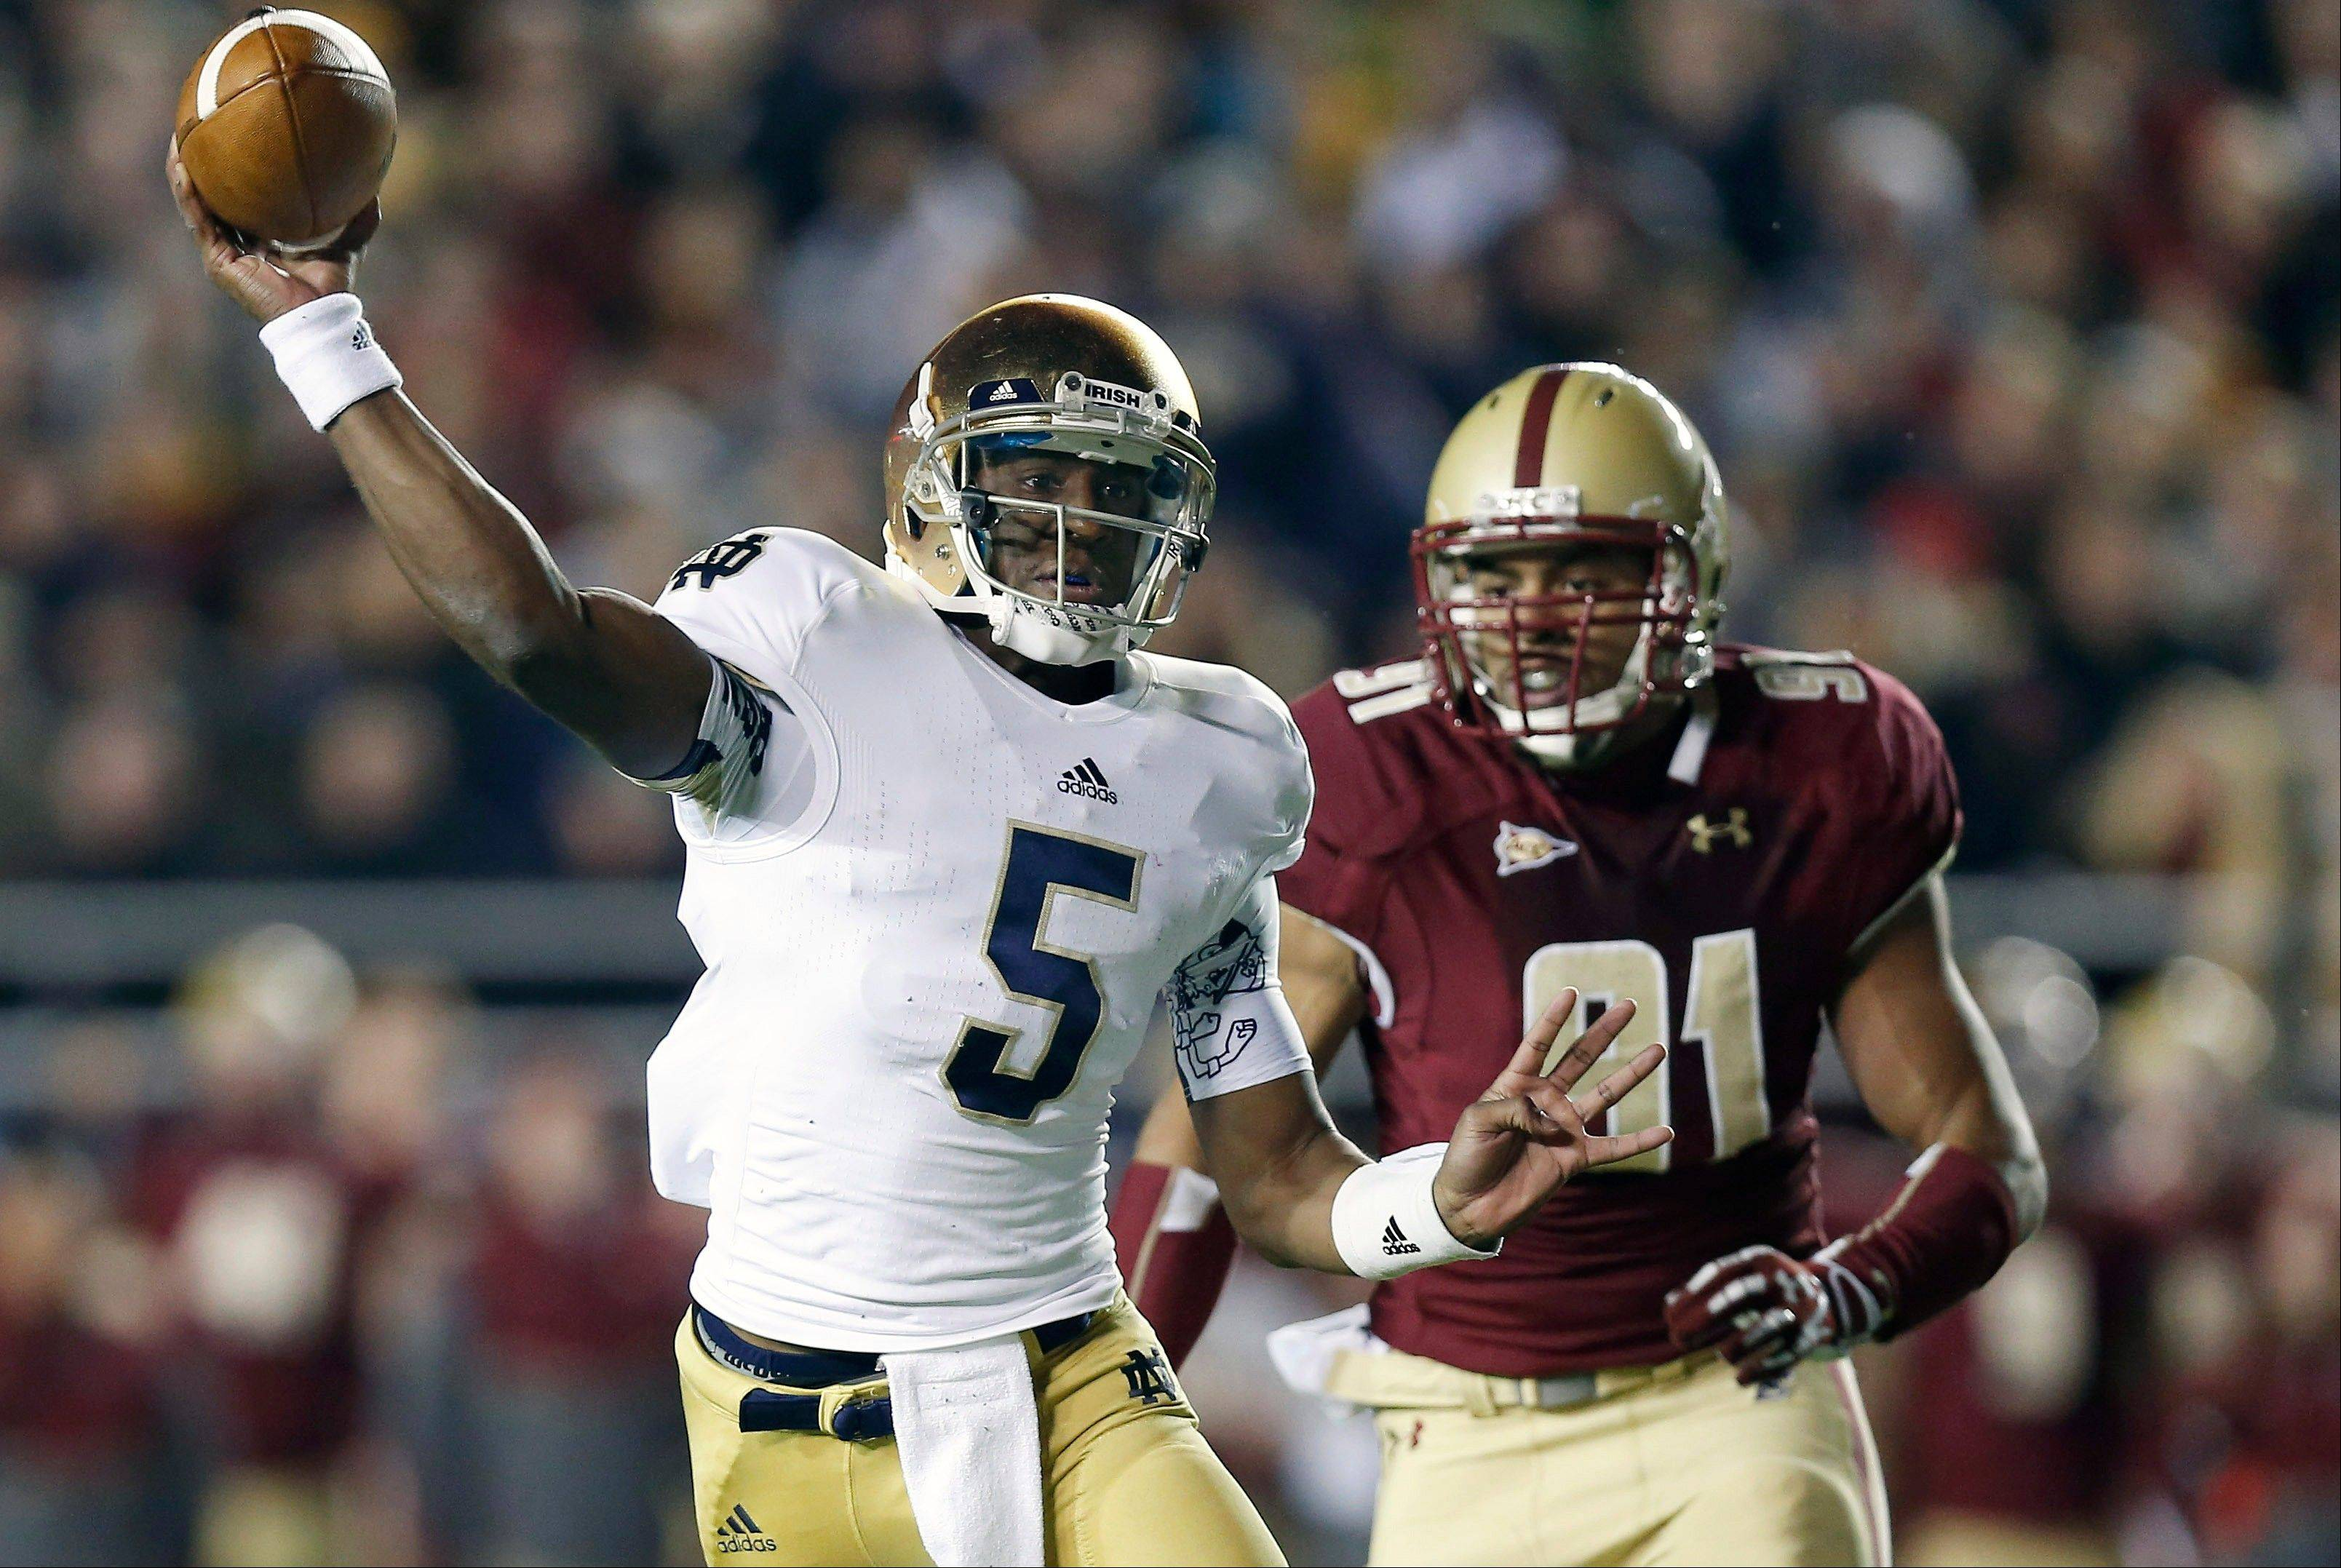 Notre Dame quarterback Everett Golson throws under pressure from Boston College's Kasim Edebali during the first half of an NCAA college football game in Boston Saturday, Nov. 10, 2012.